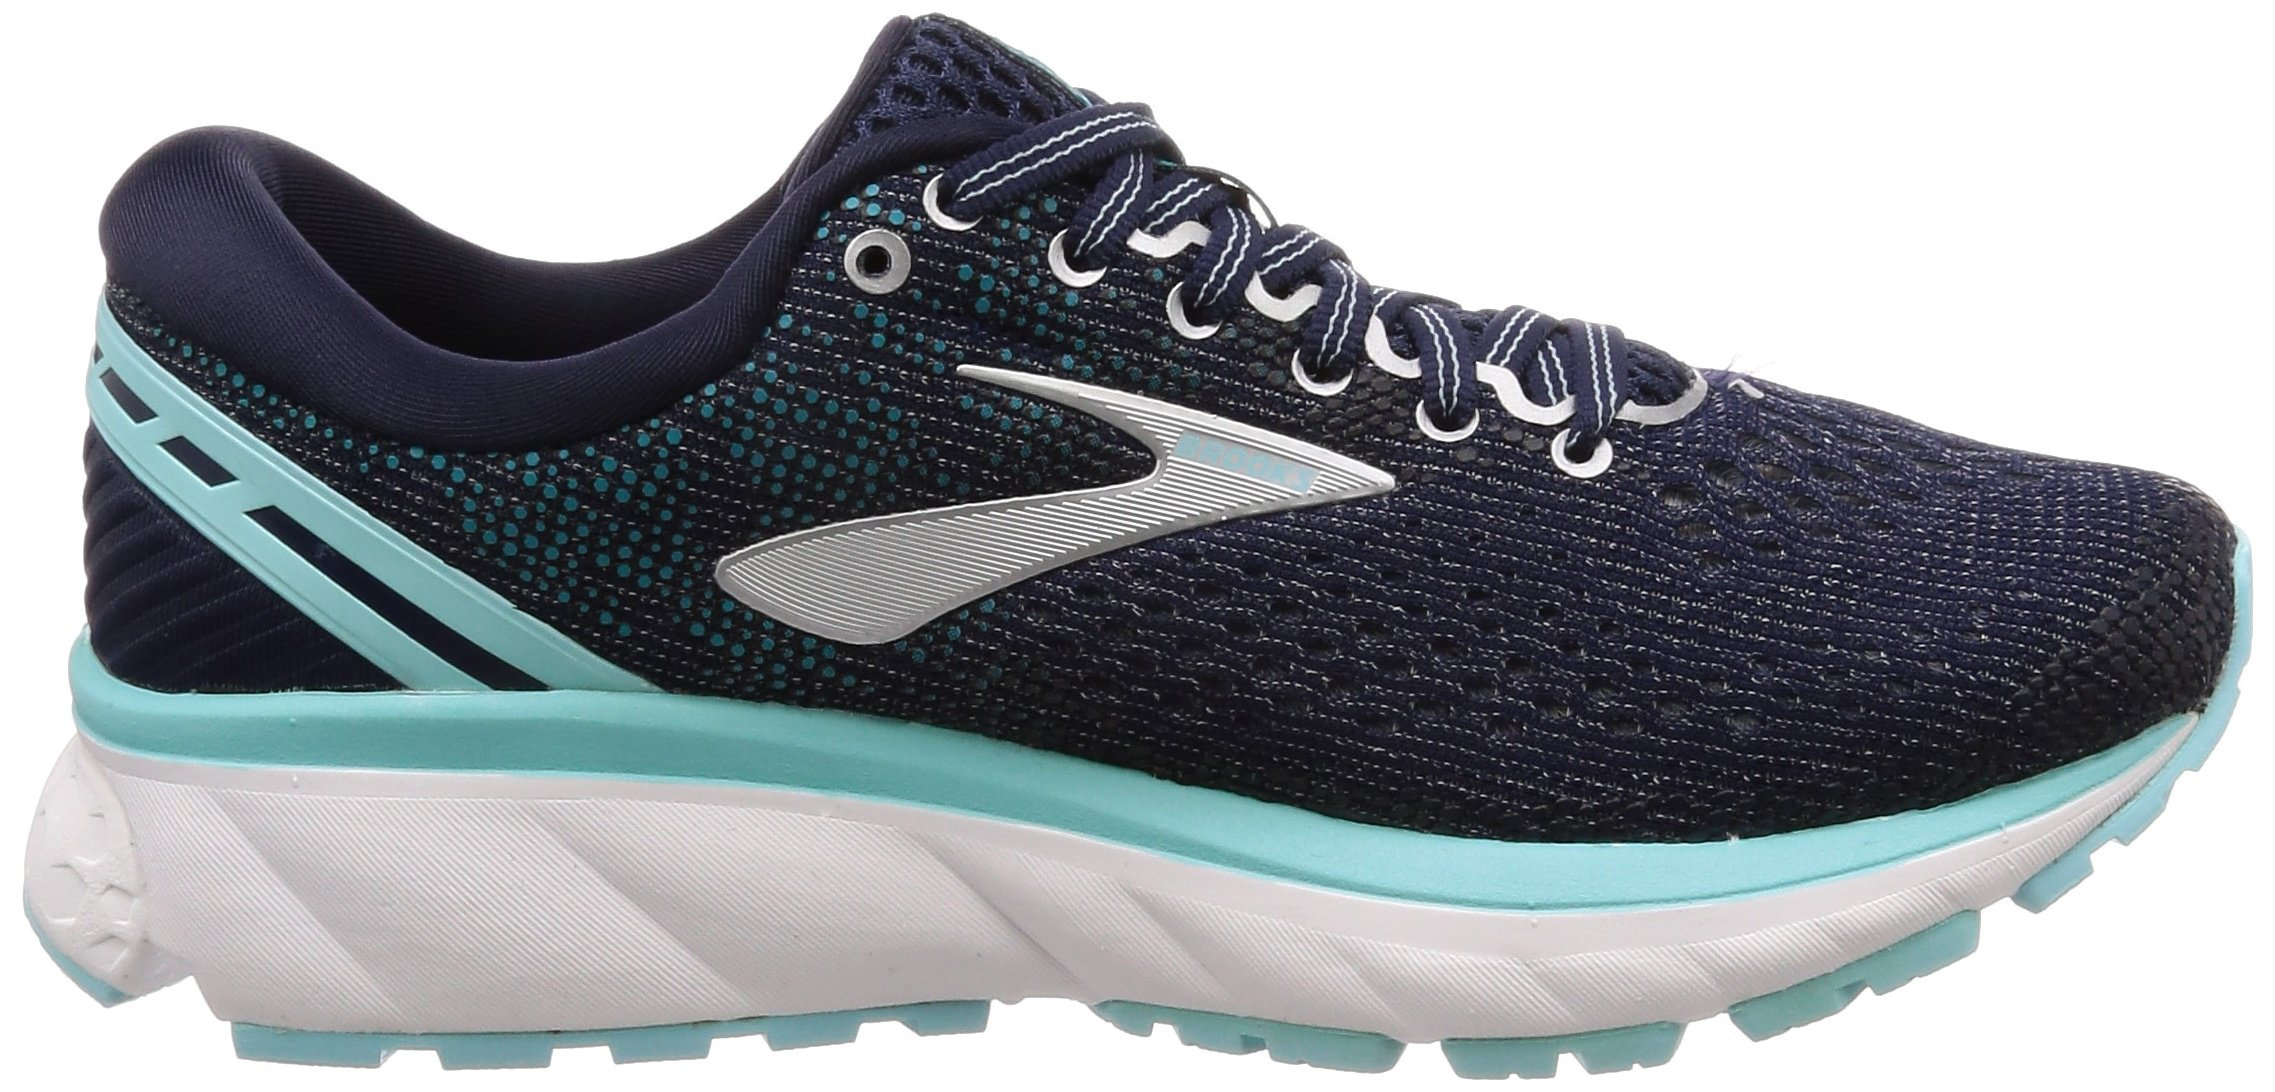 Brooks Womens Ghost 11 Running Shoe - Navy/Grey/Blue - D - 5.5 by Brooks (Image #6)